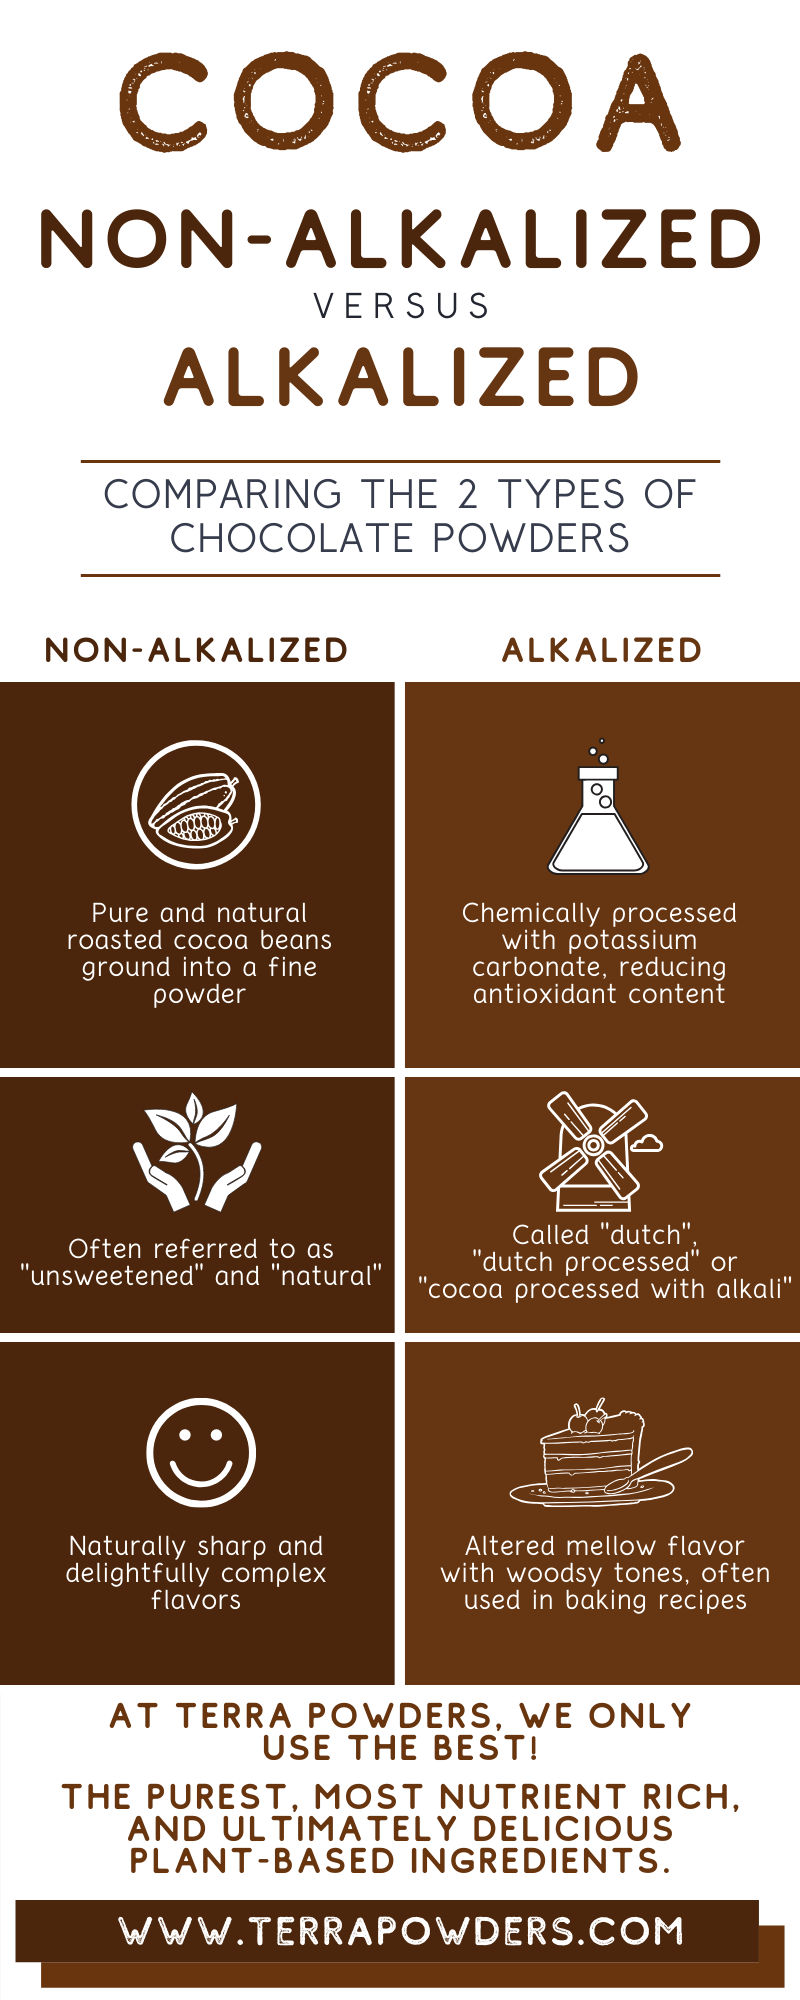 Cocoa Powder Comparison Infographic By Terra Powders Nutrient Rich Clean Food Power